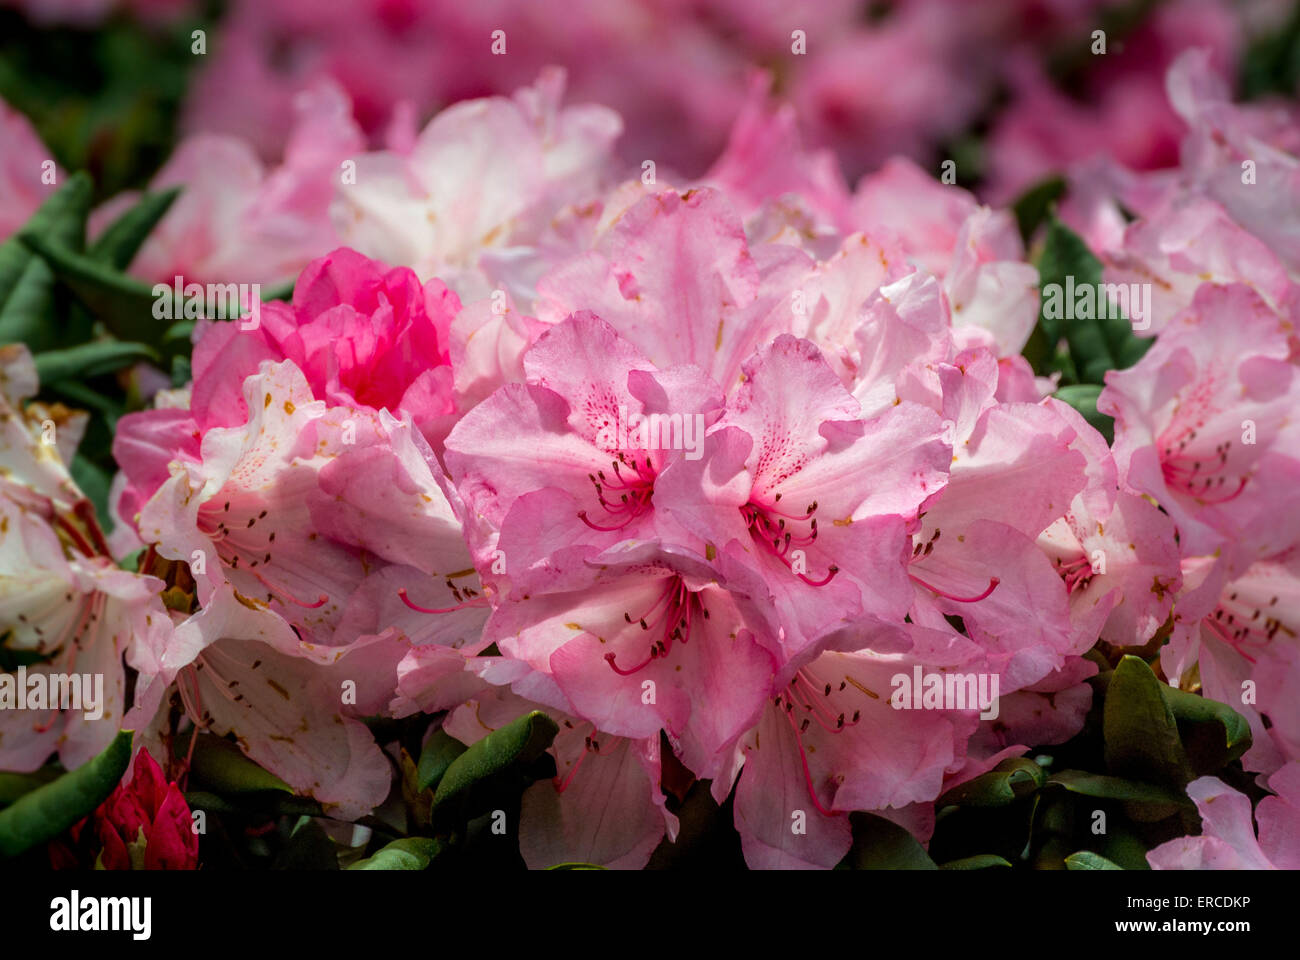 Rhododendron flowering - Stock Image